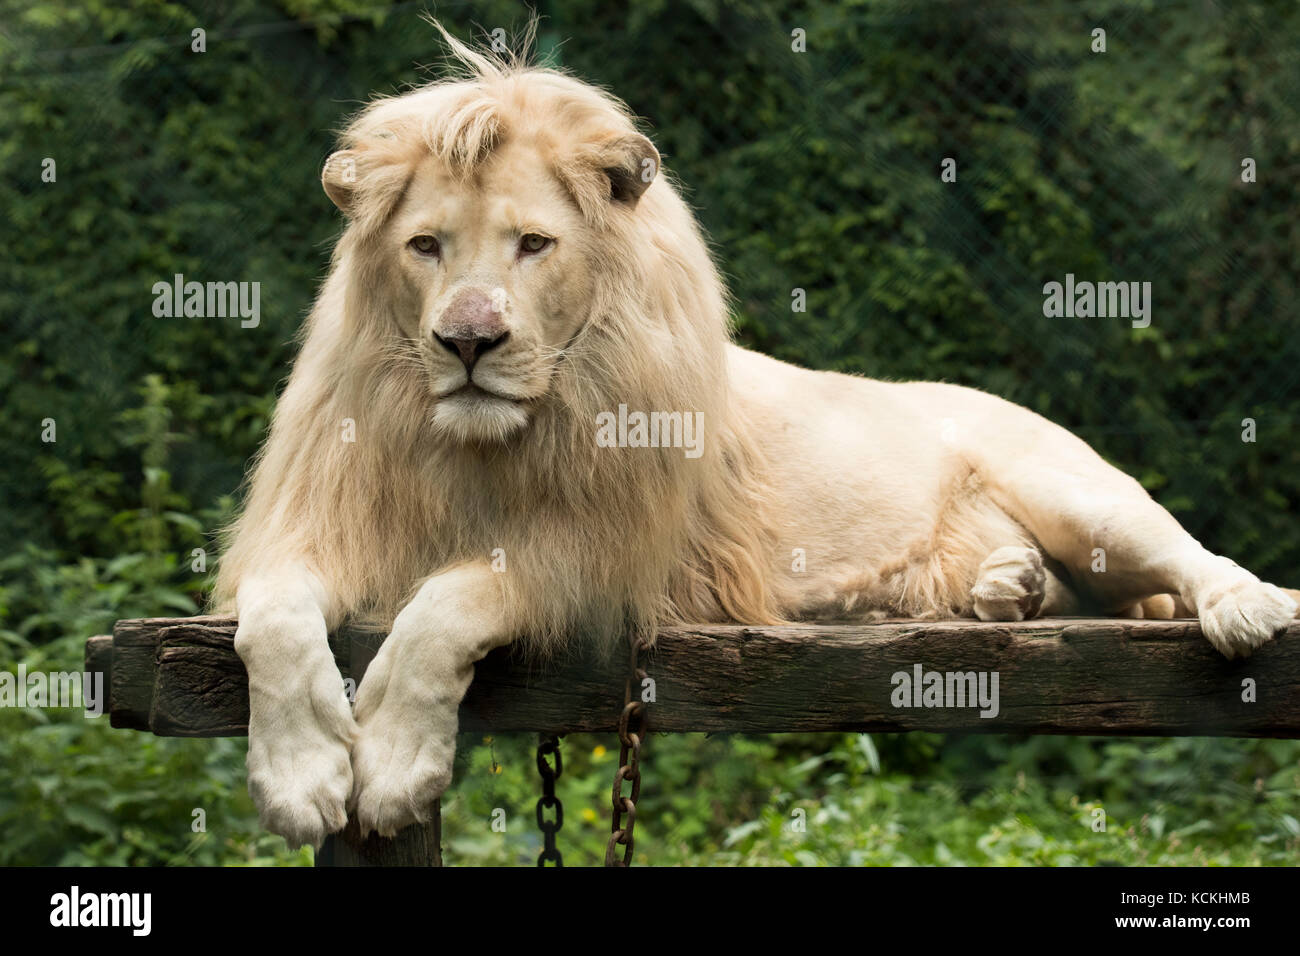 Young white lion lying on wooden platform - Stock Image